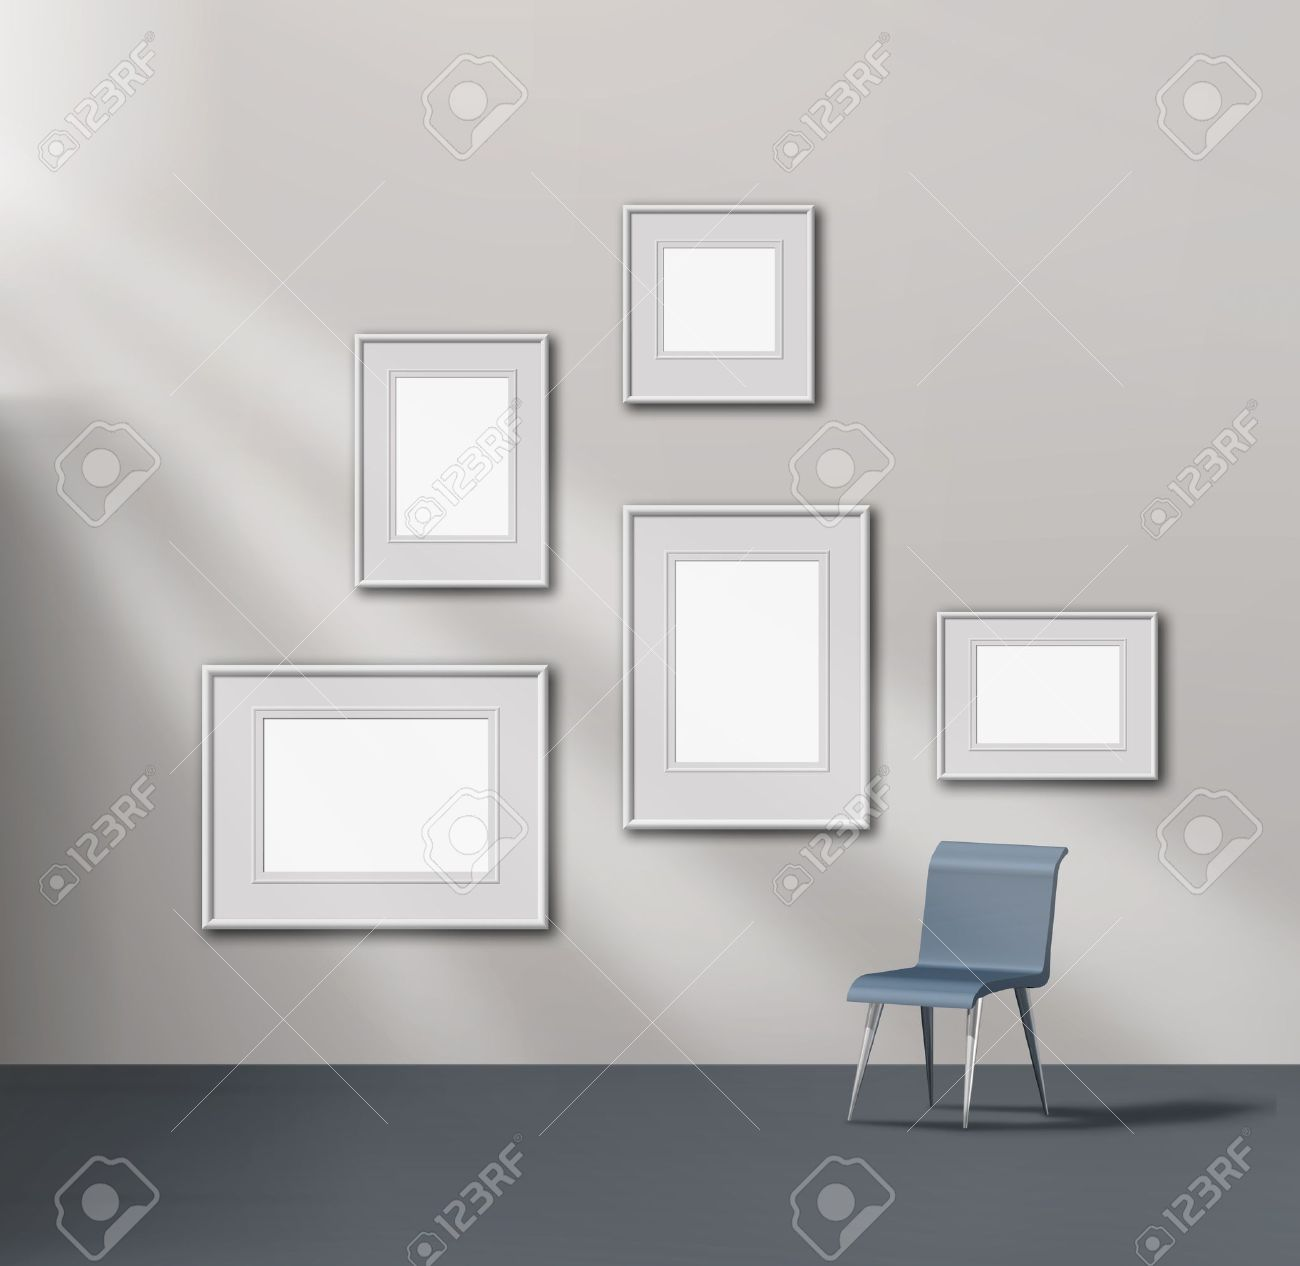 Picture Gallery Exhibition Space Empty Frames Collection Stock Photo ...